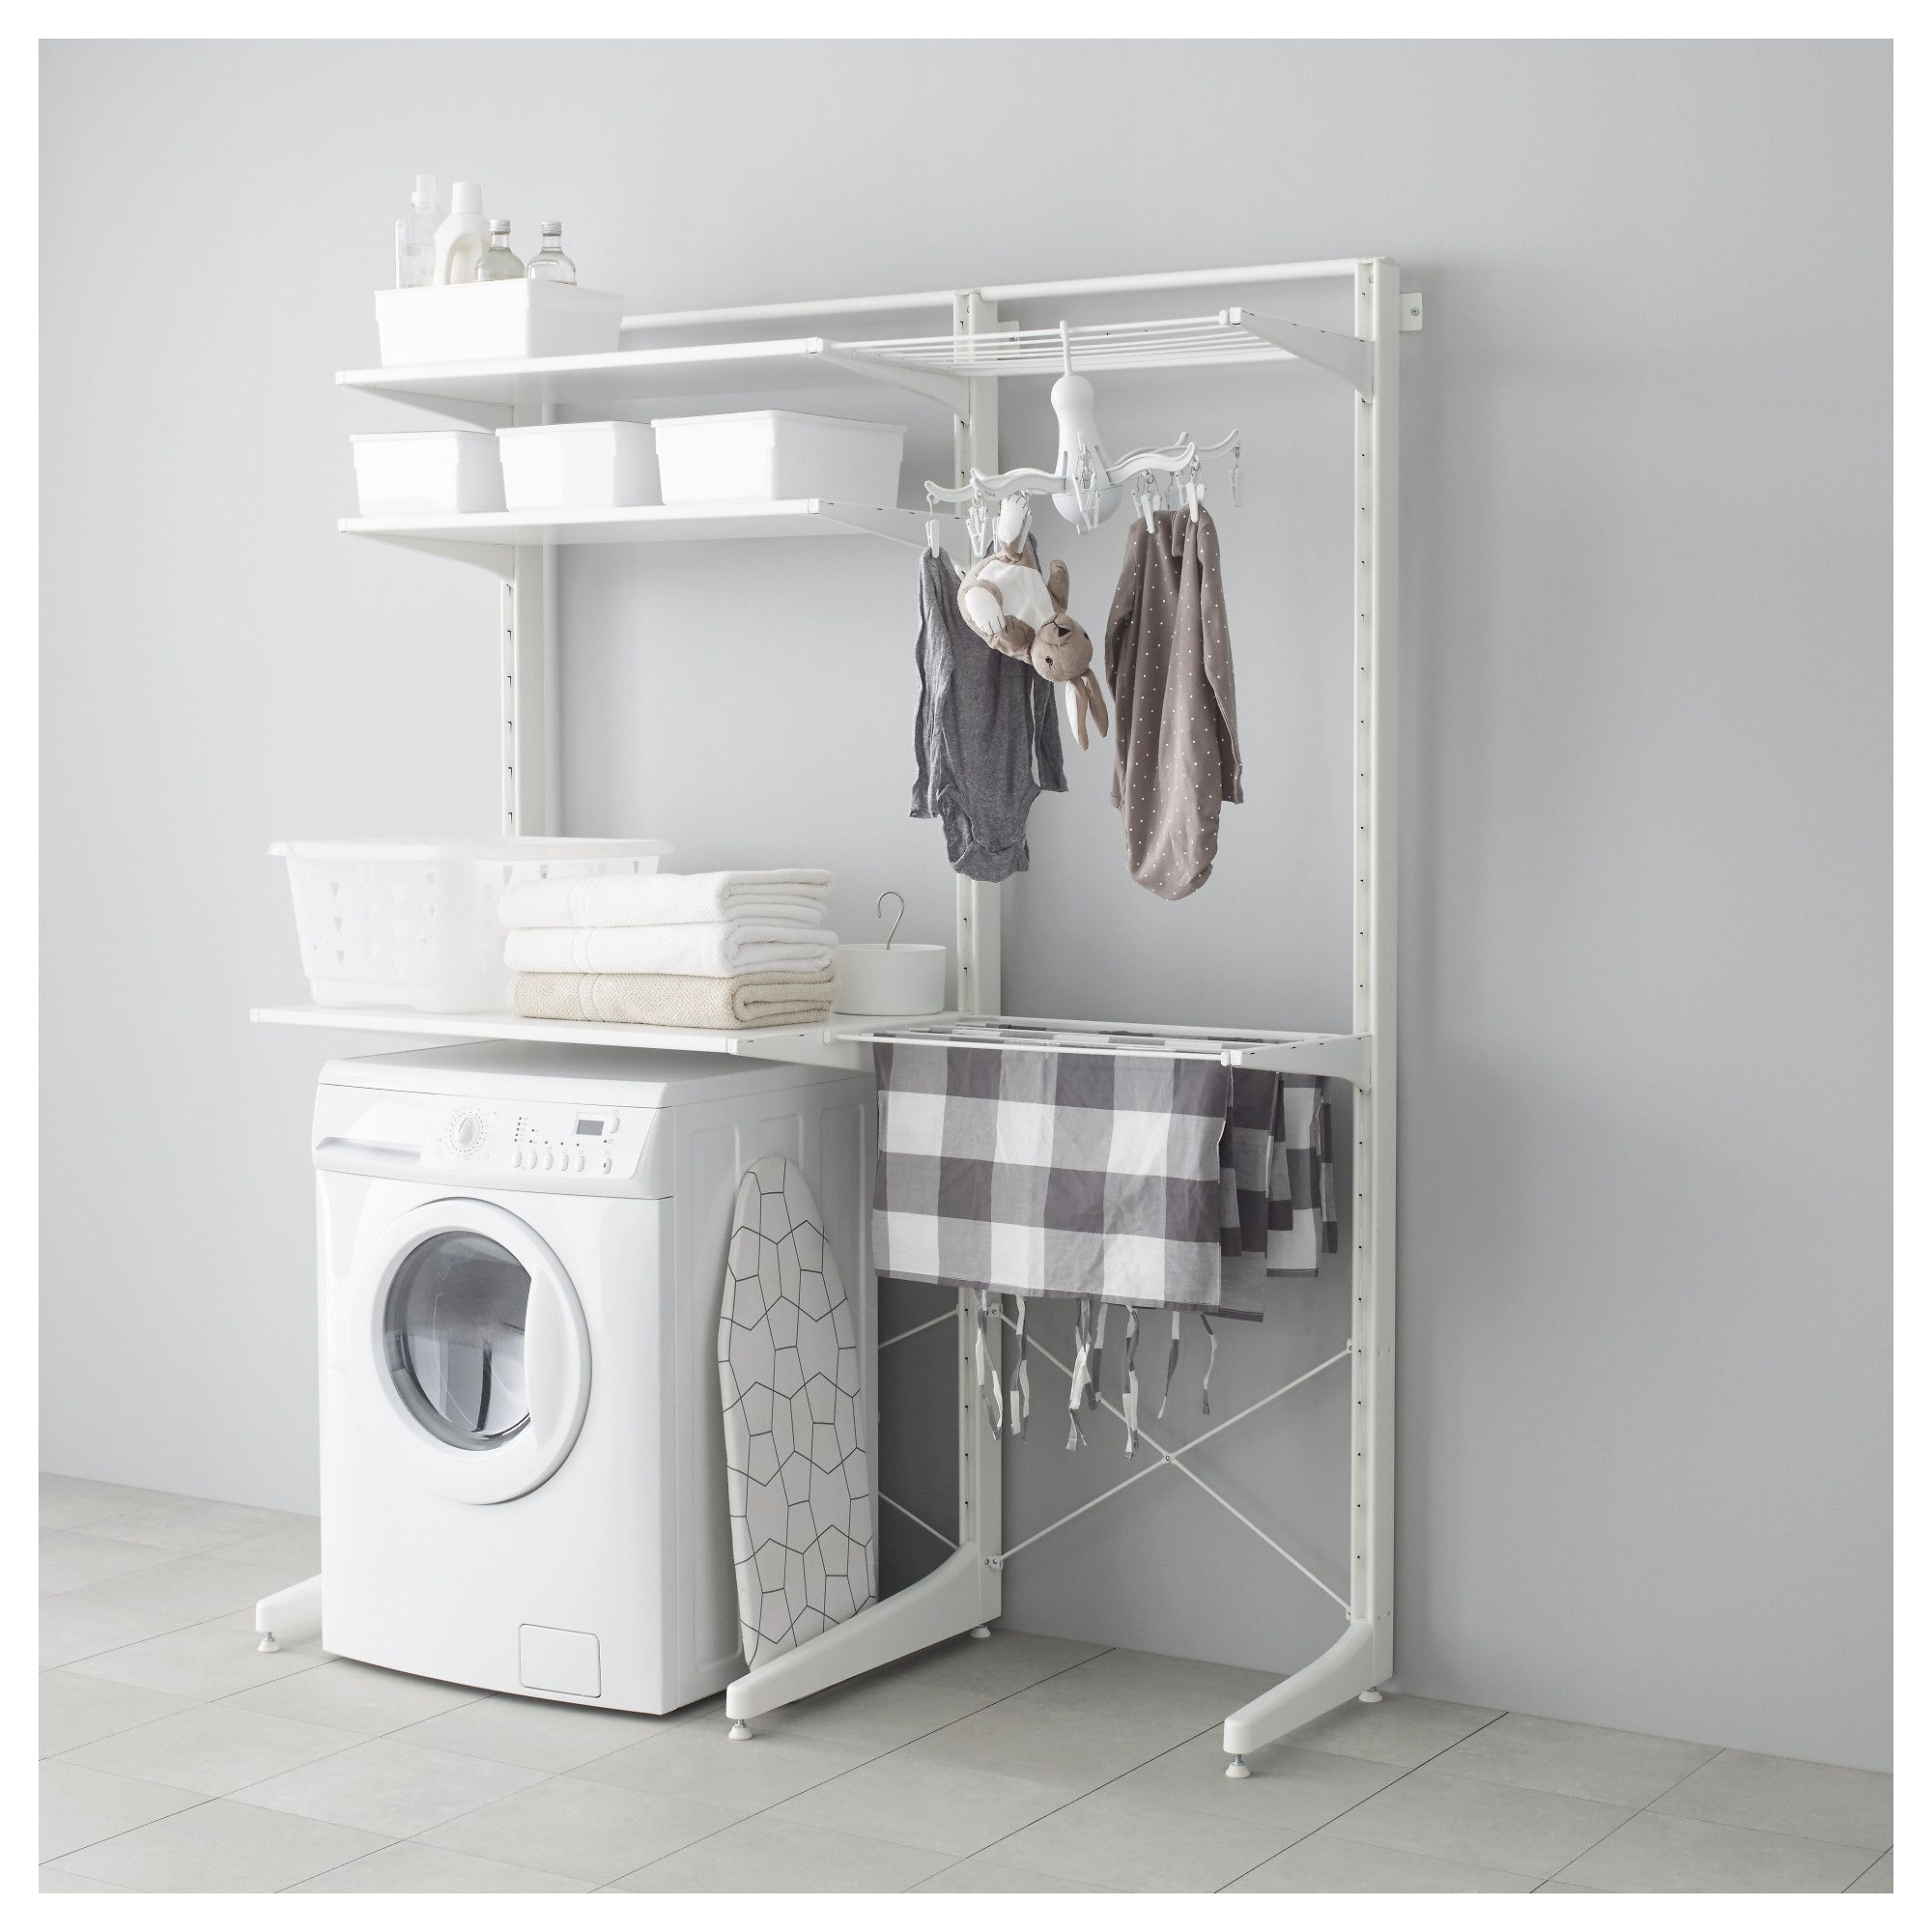 IKEA ALGOT Post foot drying rack The parts in the ALGOT series can be bined in many different ways and easily adapted to your needs and space